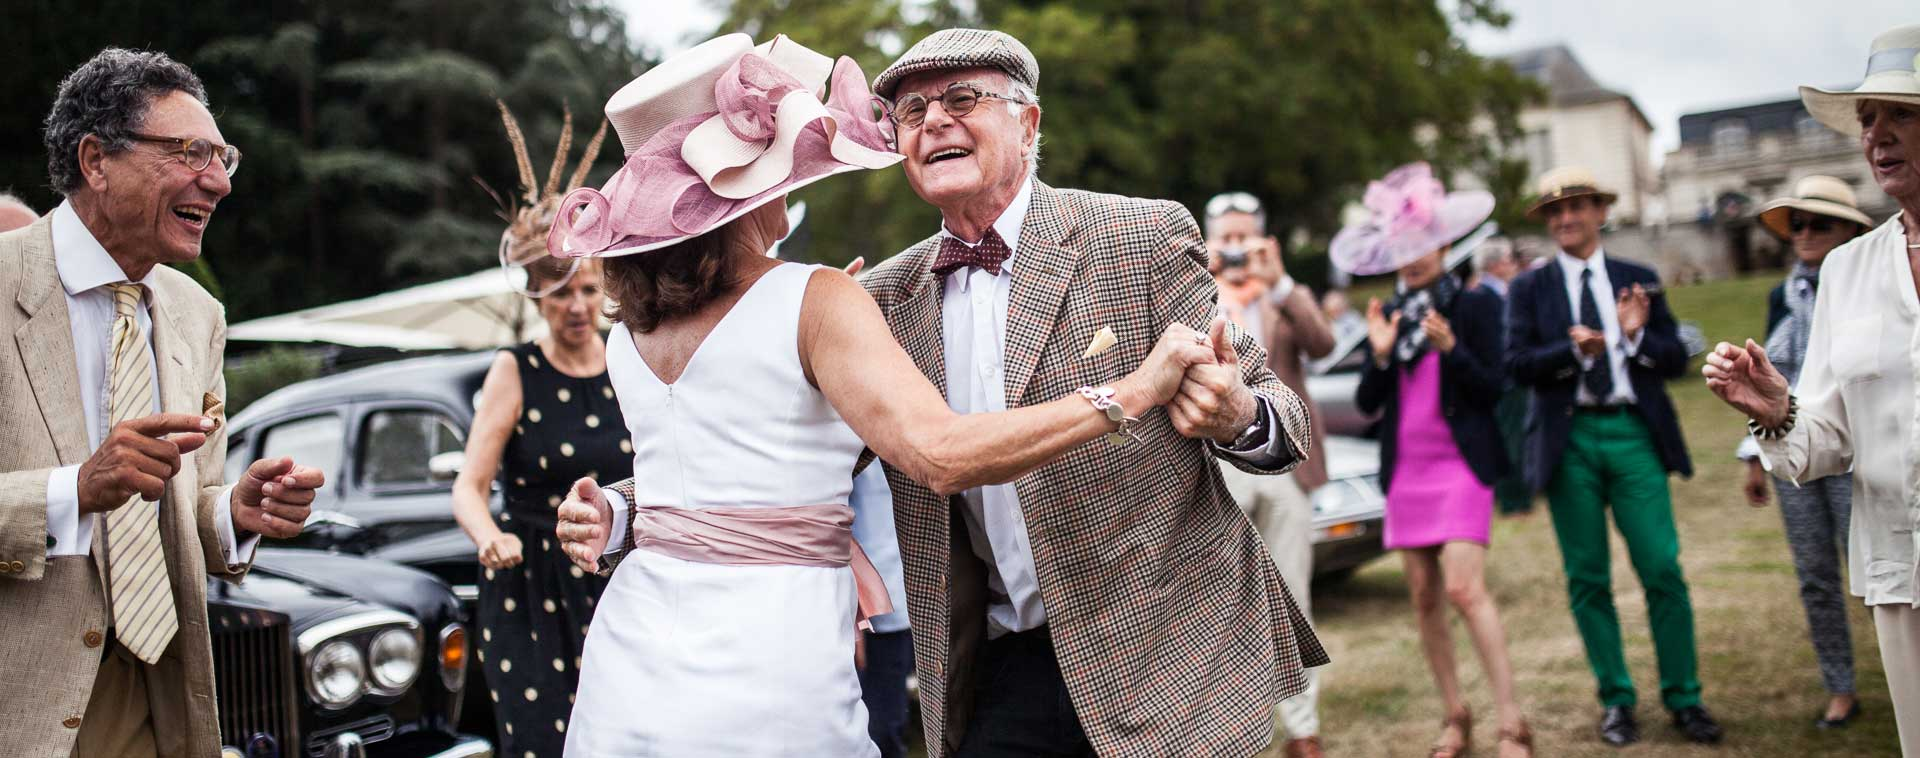 dress code Chantilly Arts & Elegance Richard Mille